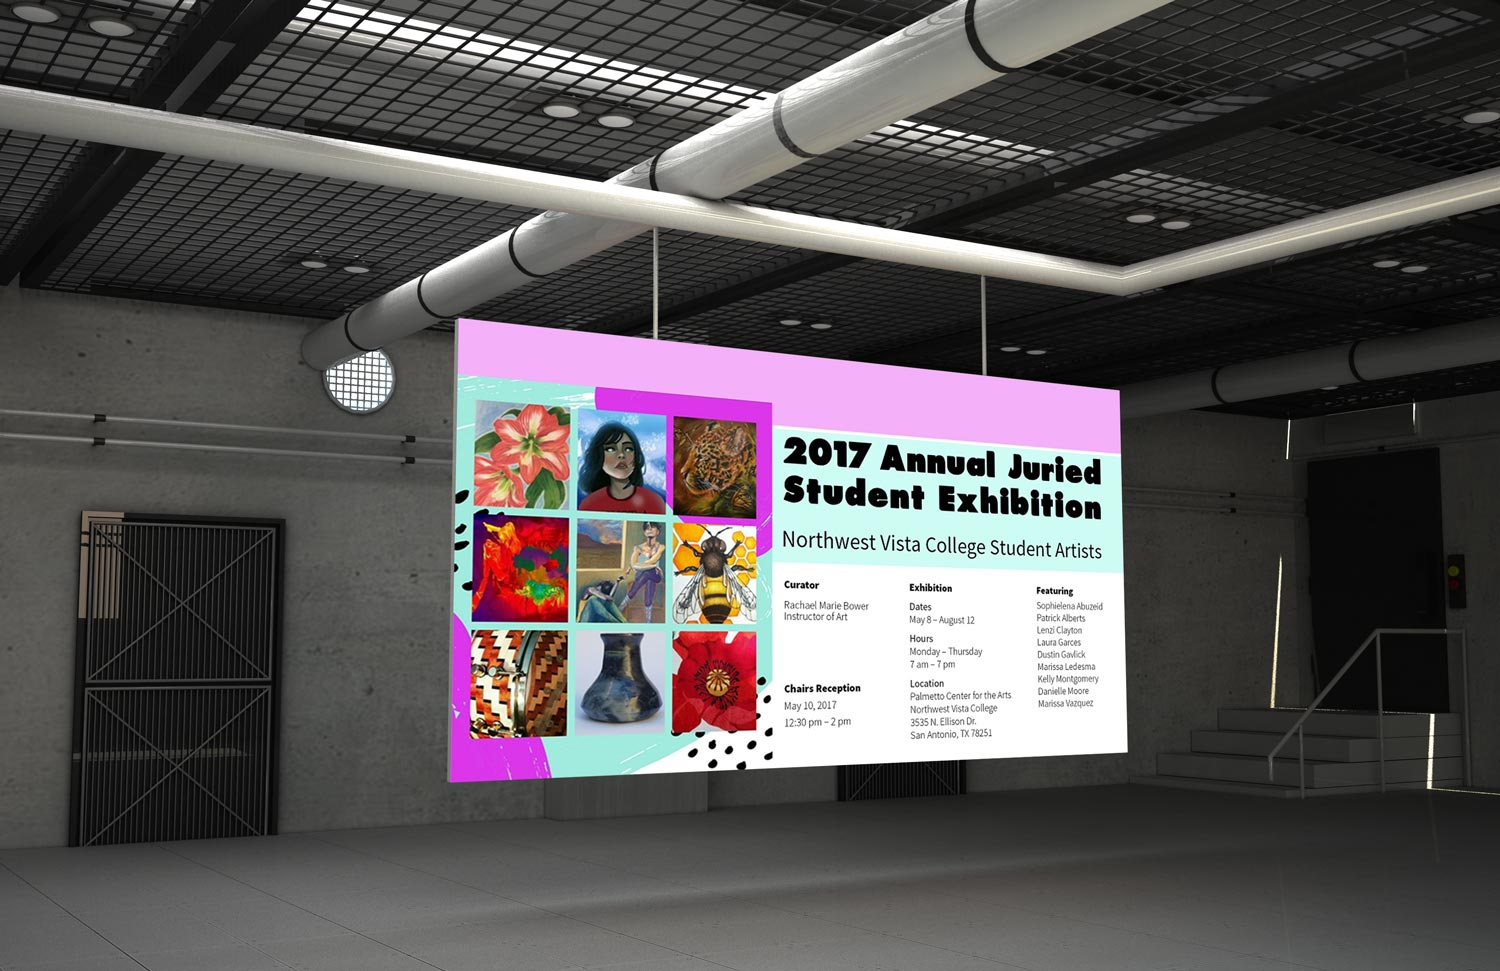 2017 Annual Juried Student Exhibition